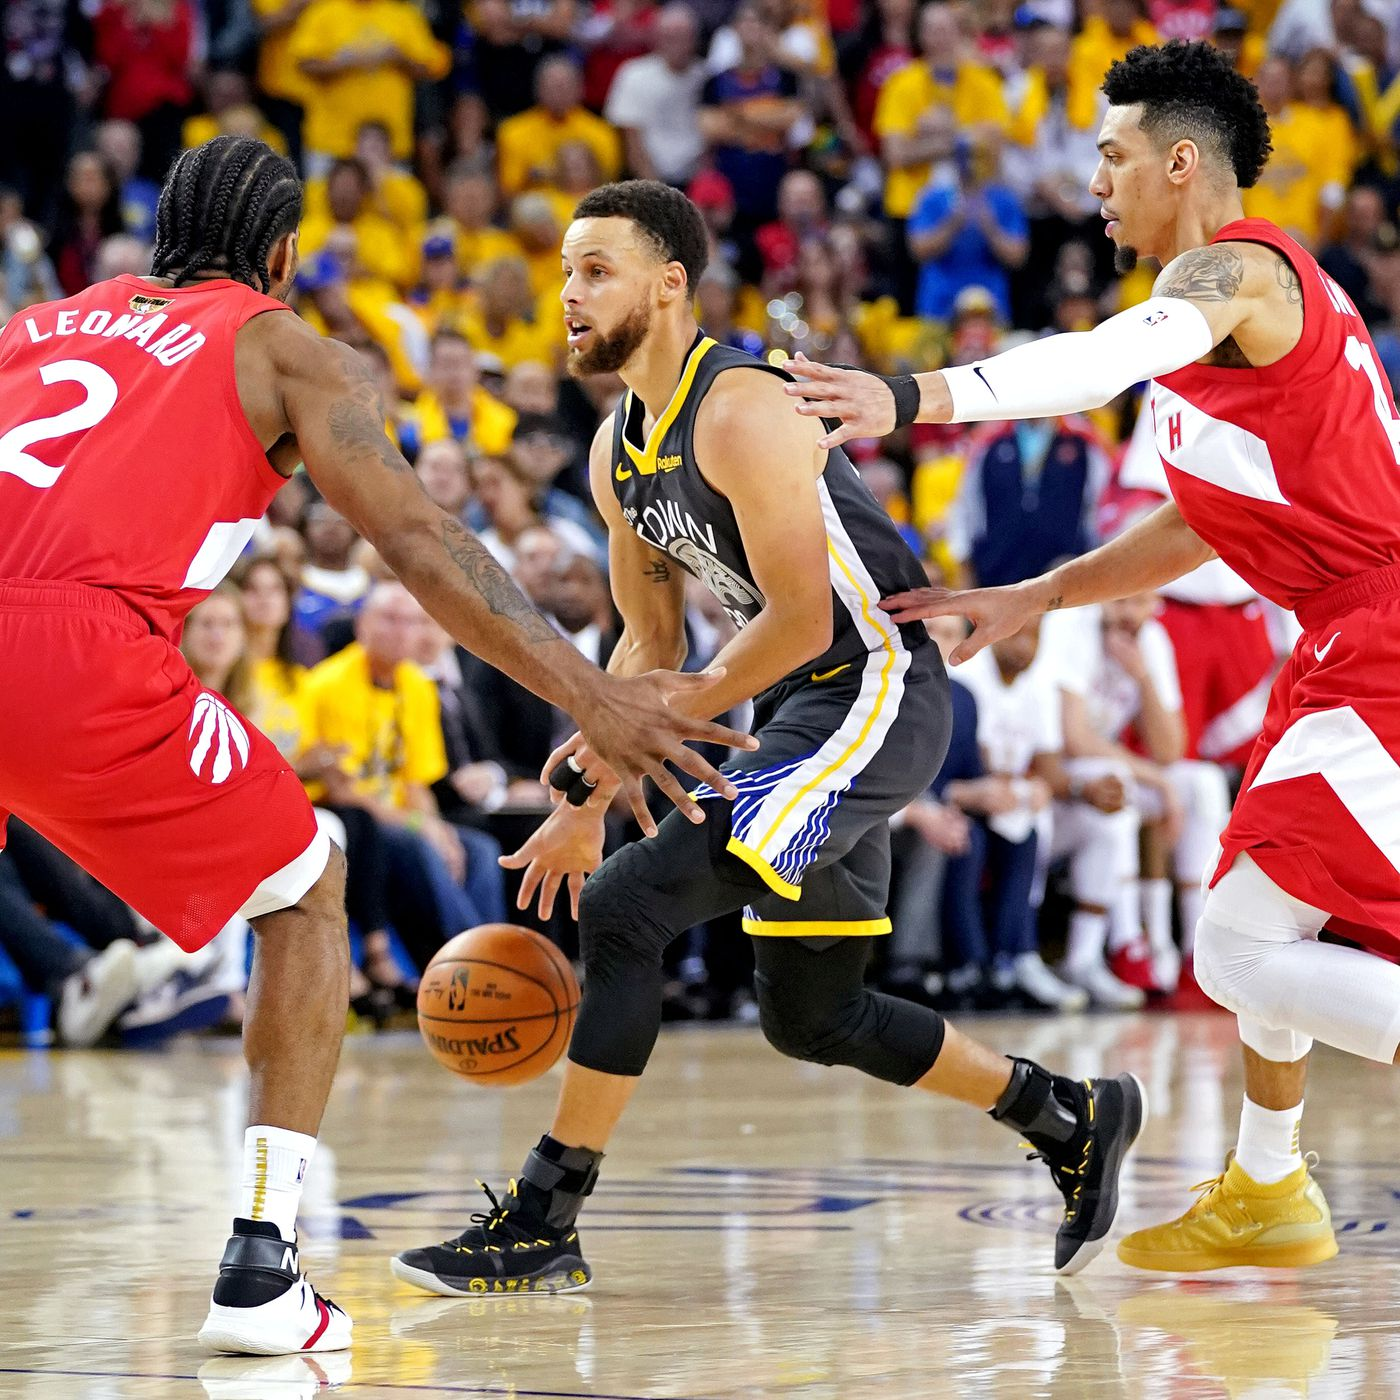 98c2622d135 2019 NBA Finals Analysis: Kawhi Leonard and the Toronto Raptors' defense  undoes the Warriors in Game 4 - Raptors HQ